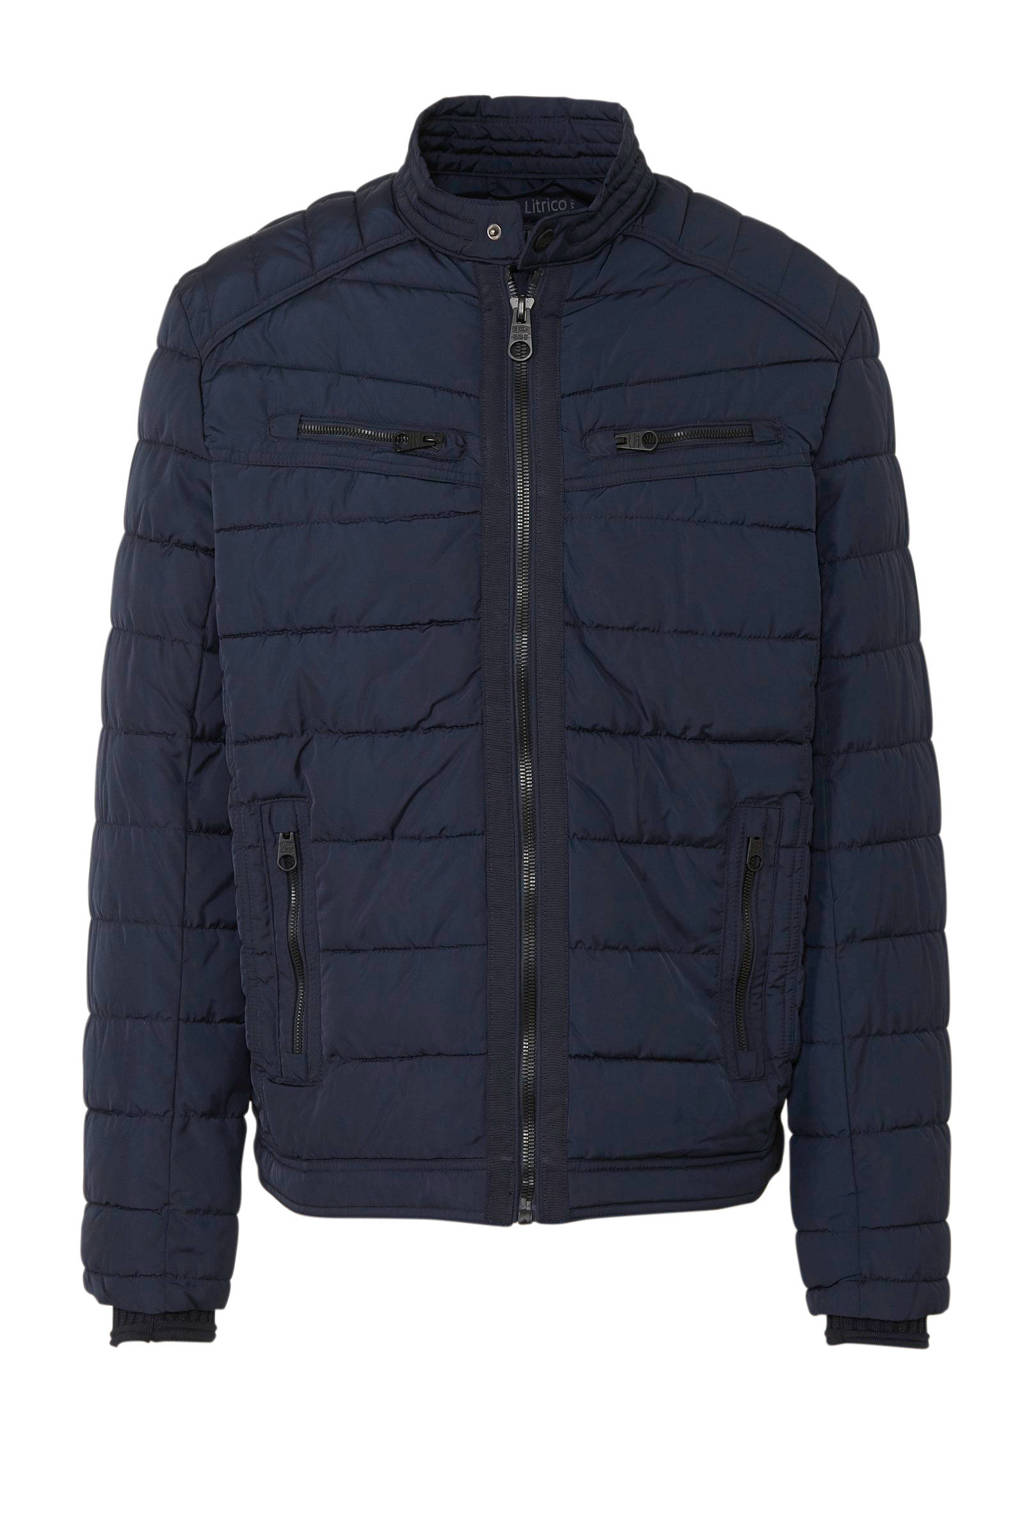 C&A Angelo Litrico tussenjas donkerblauw, Donkerblauw